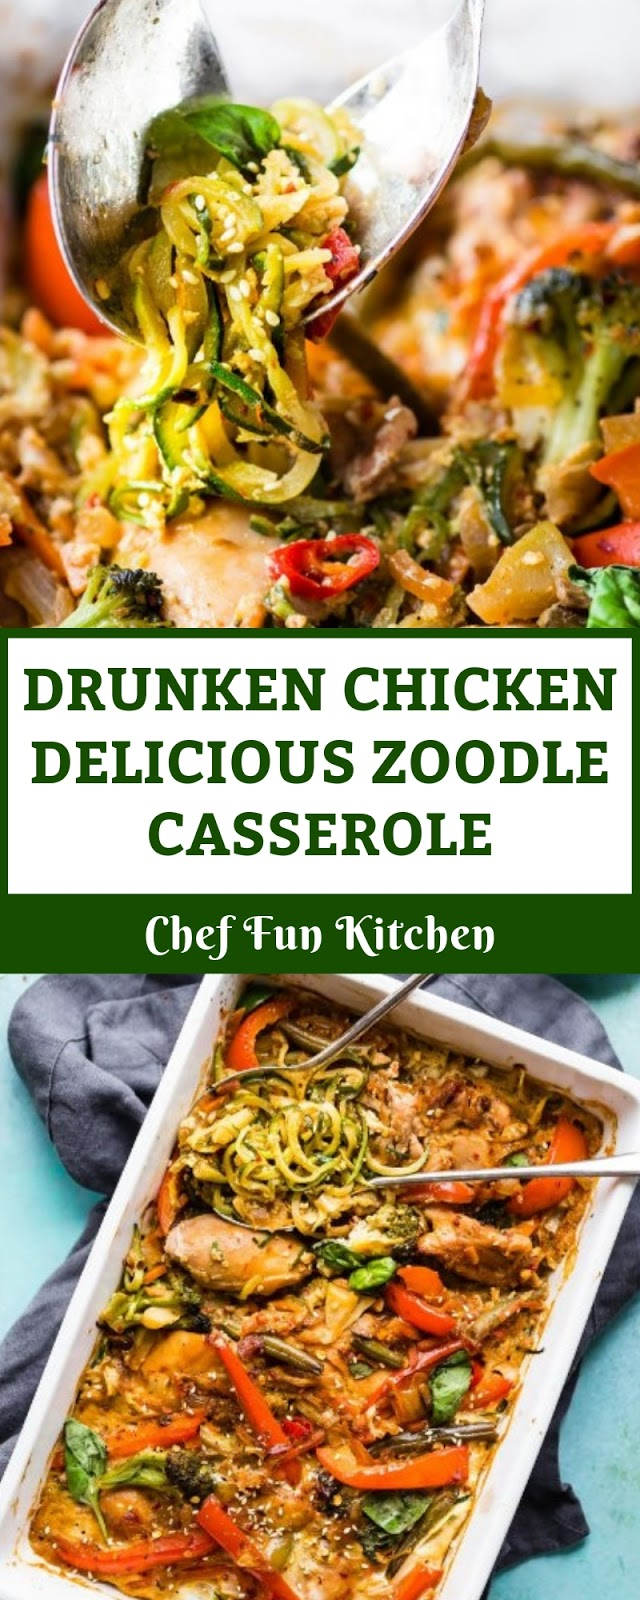 DRUNKEN CHICKEN DELICIOUS ZOODLE CASSEROLE